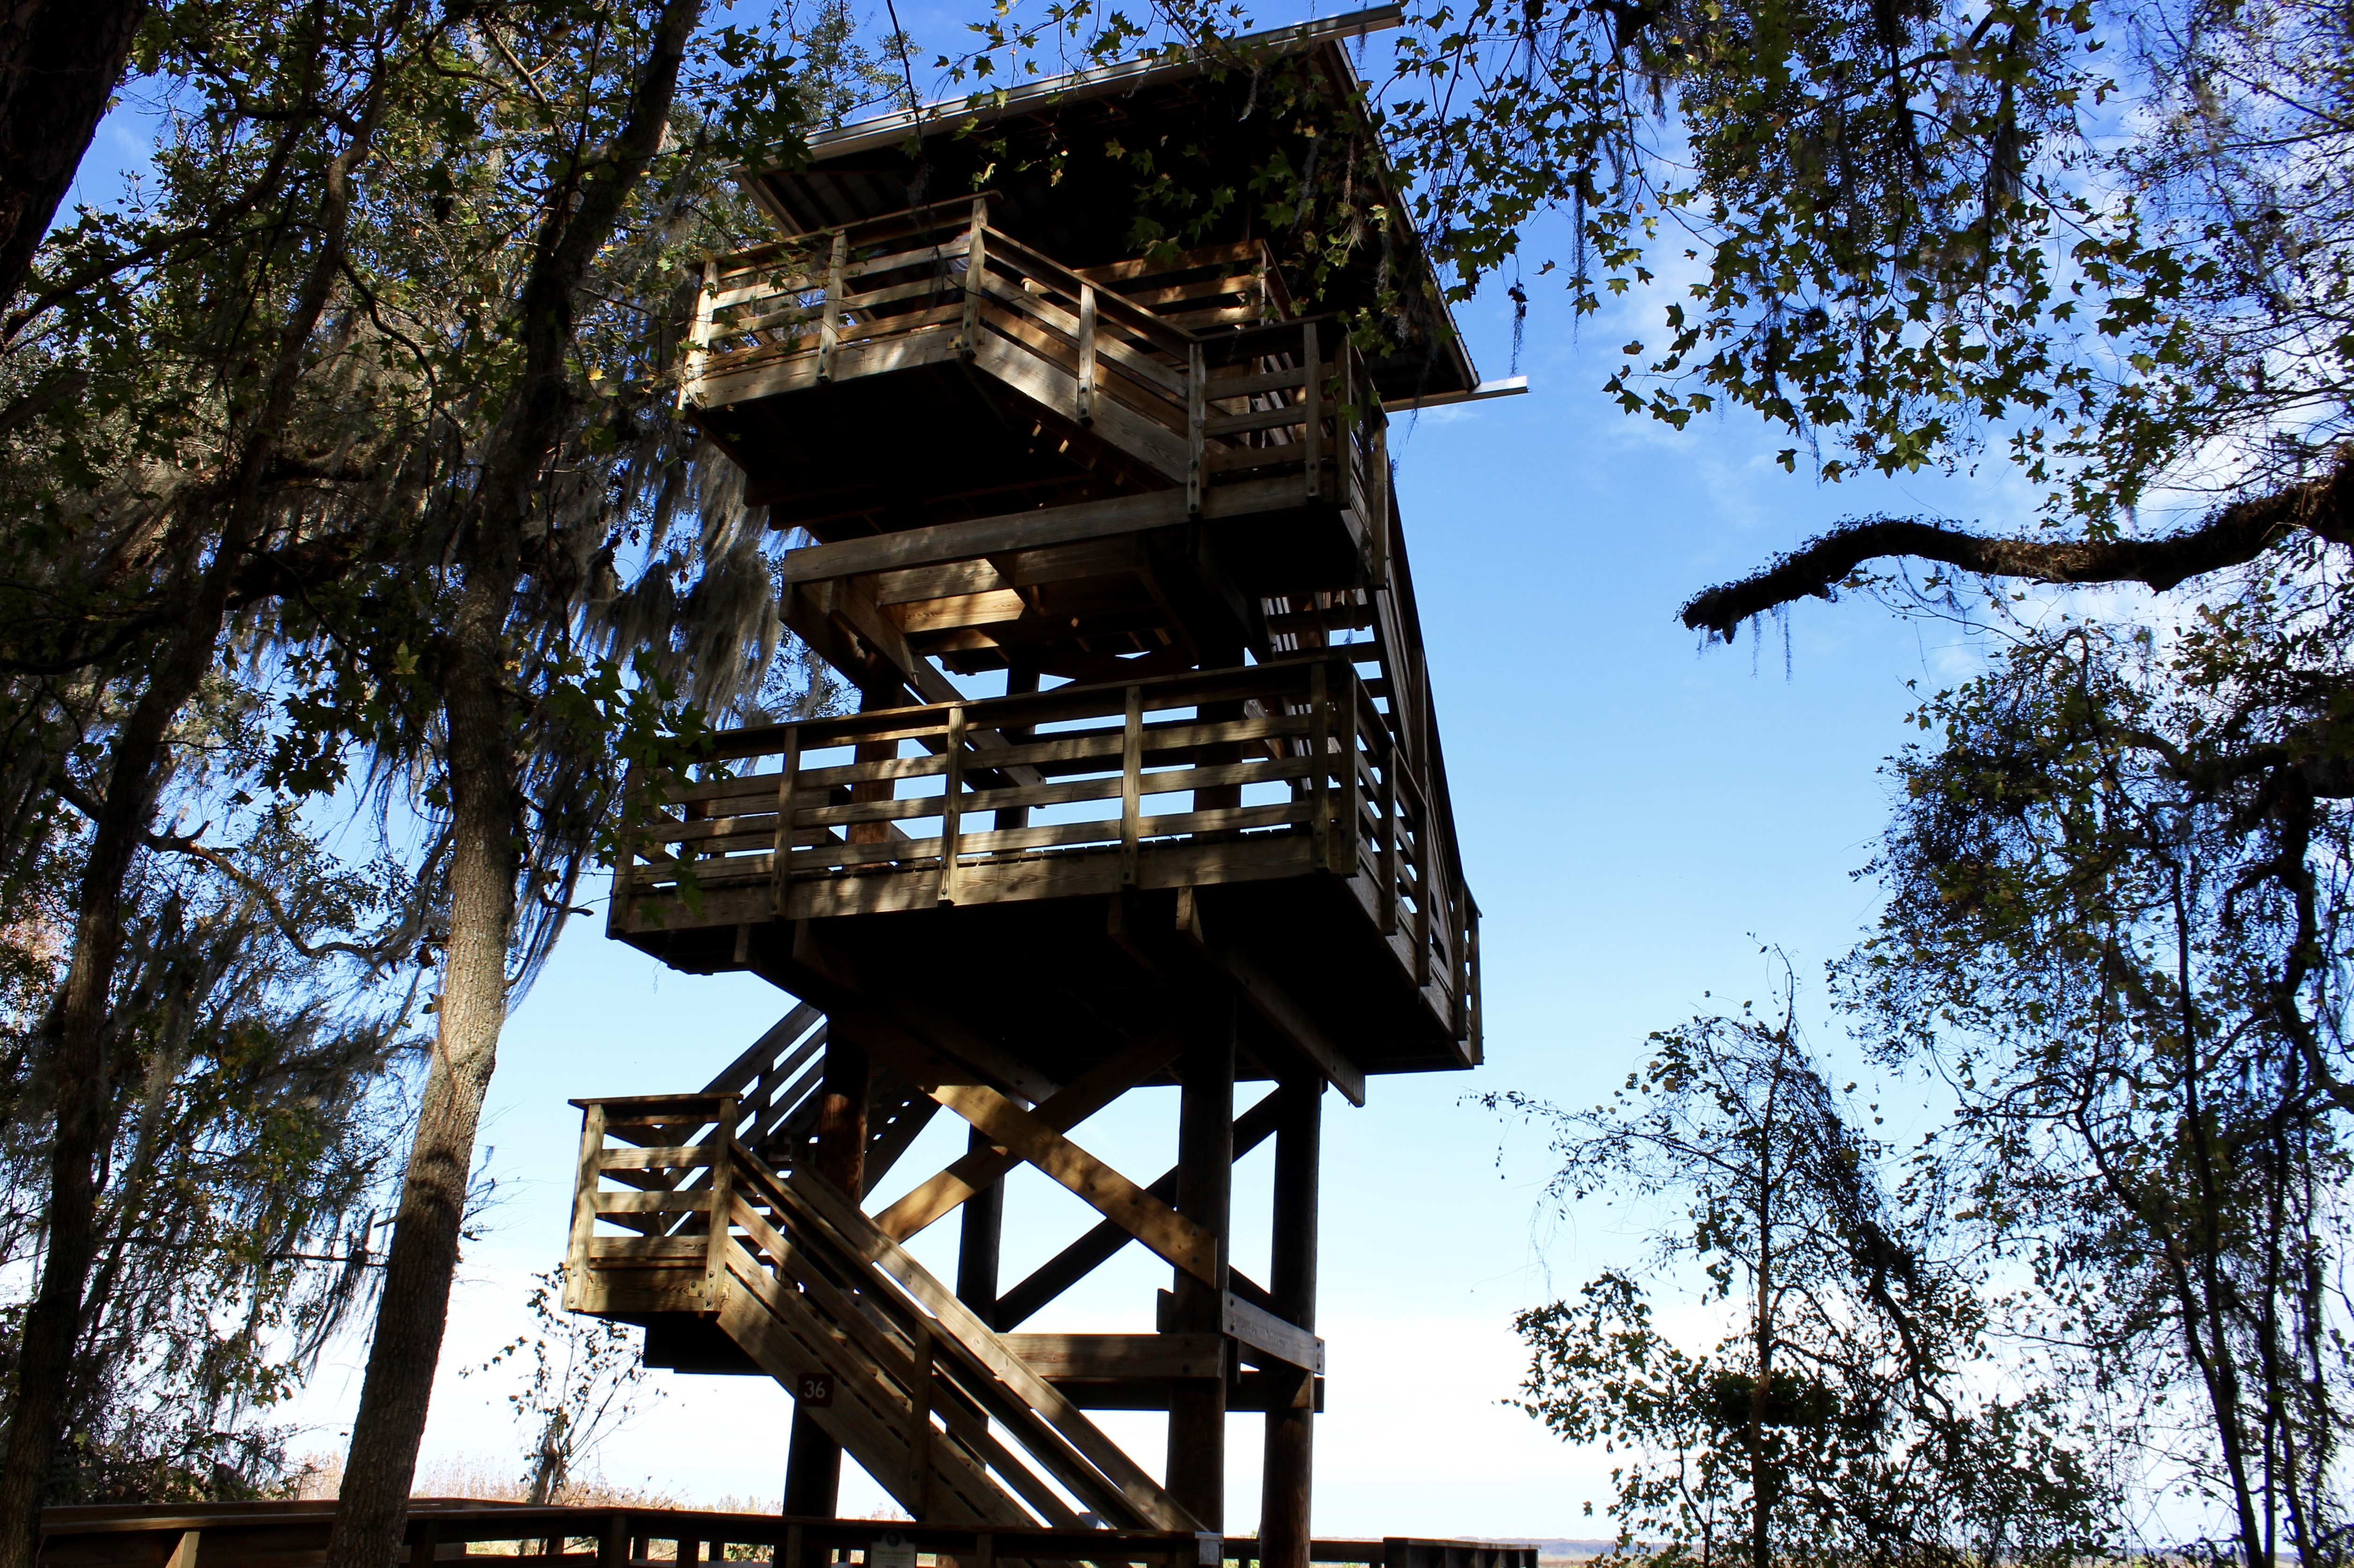 Lookout tower at Paynes Prairie Preserve State Park